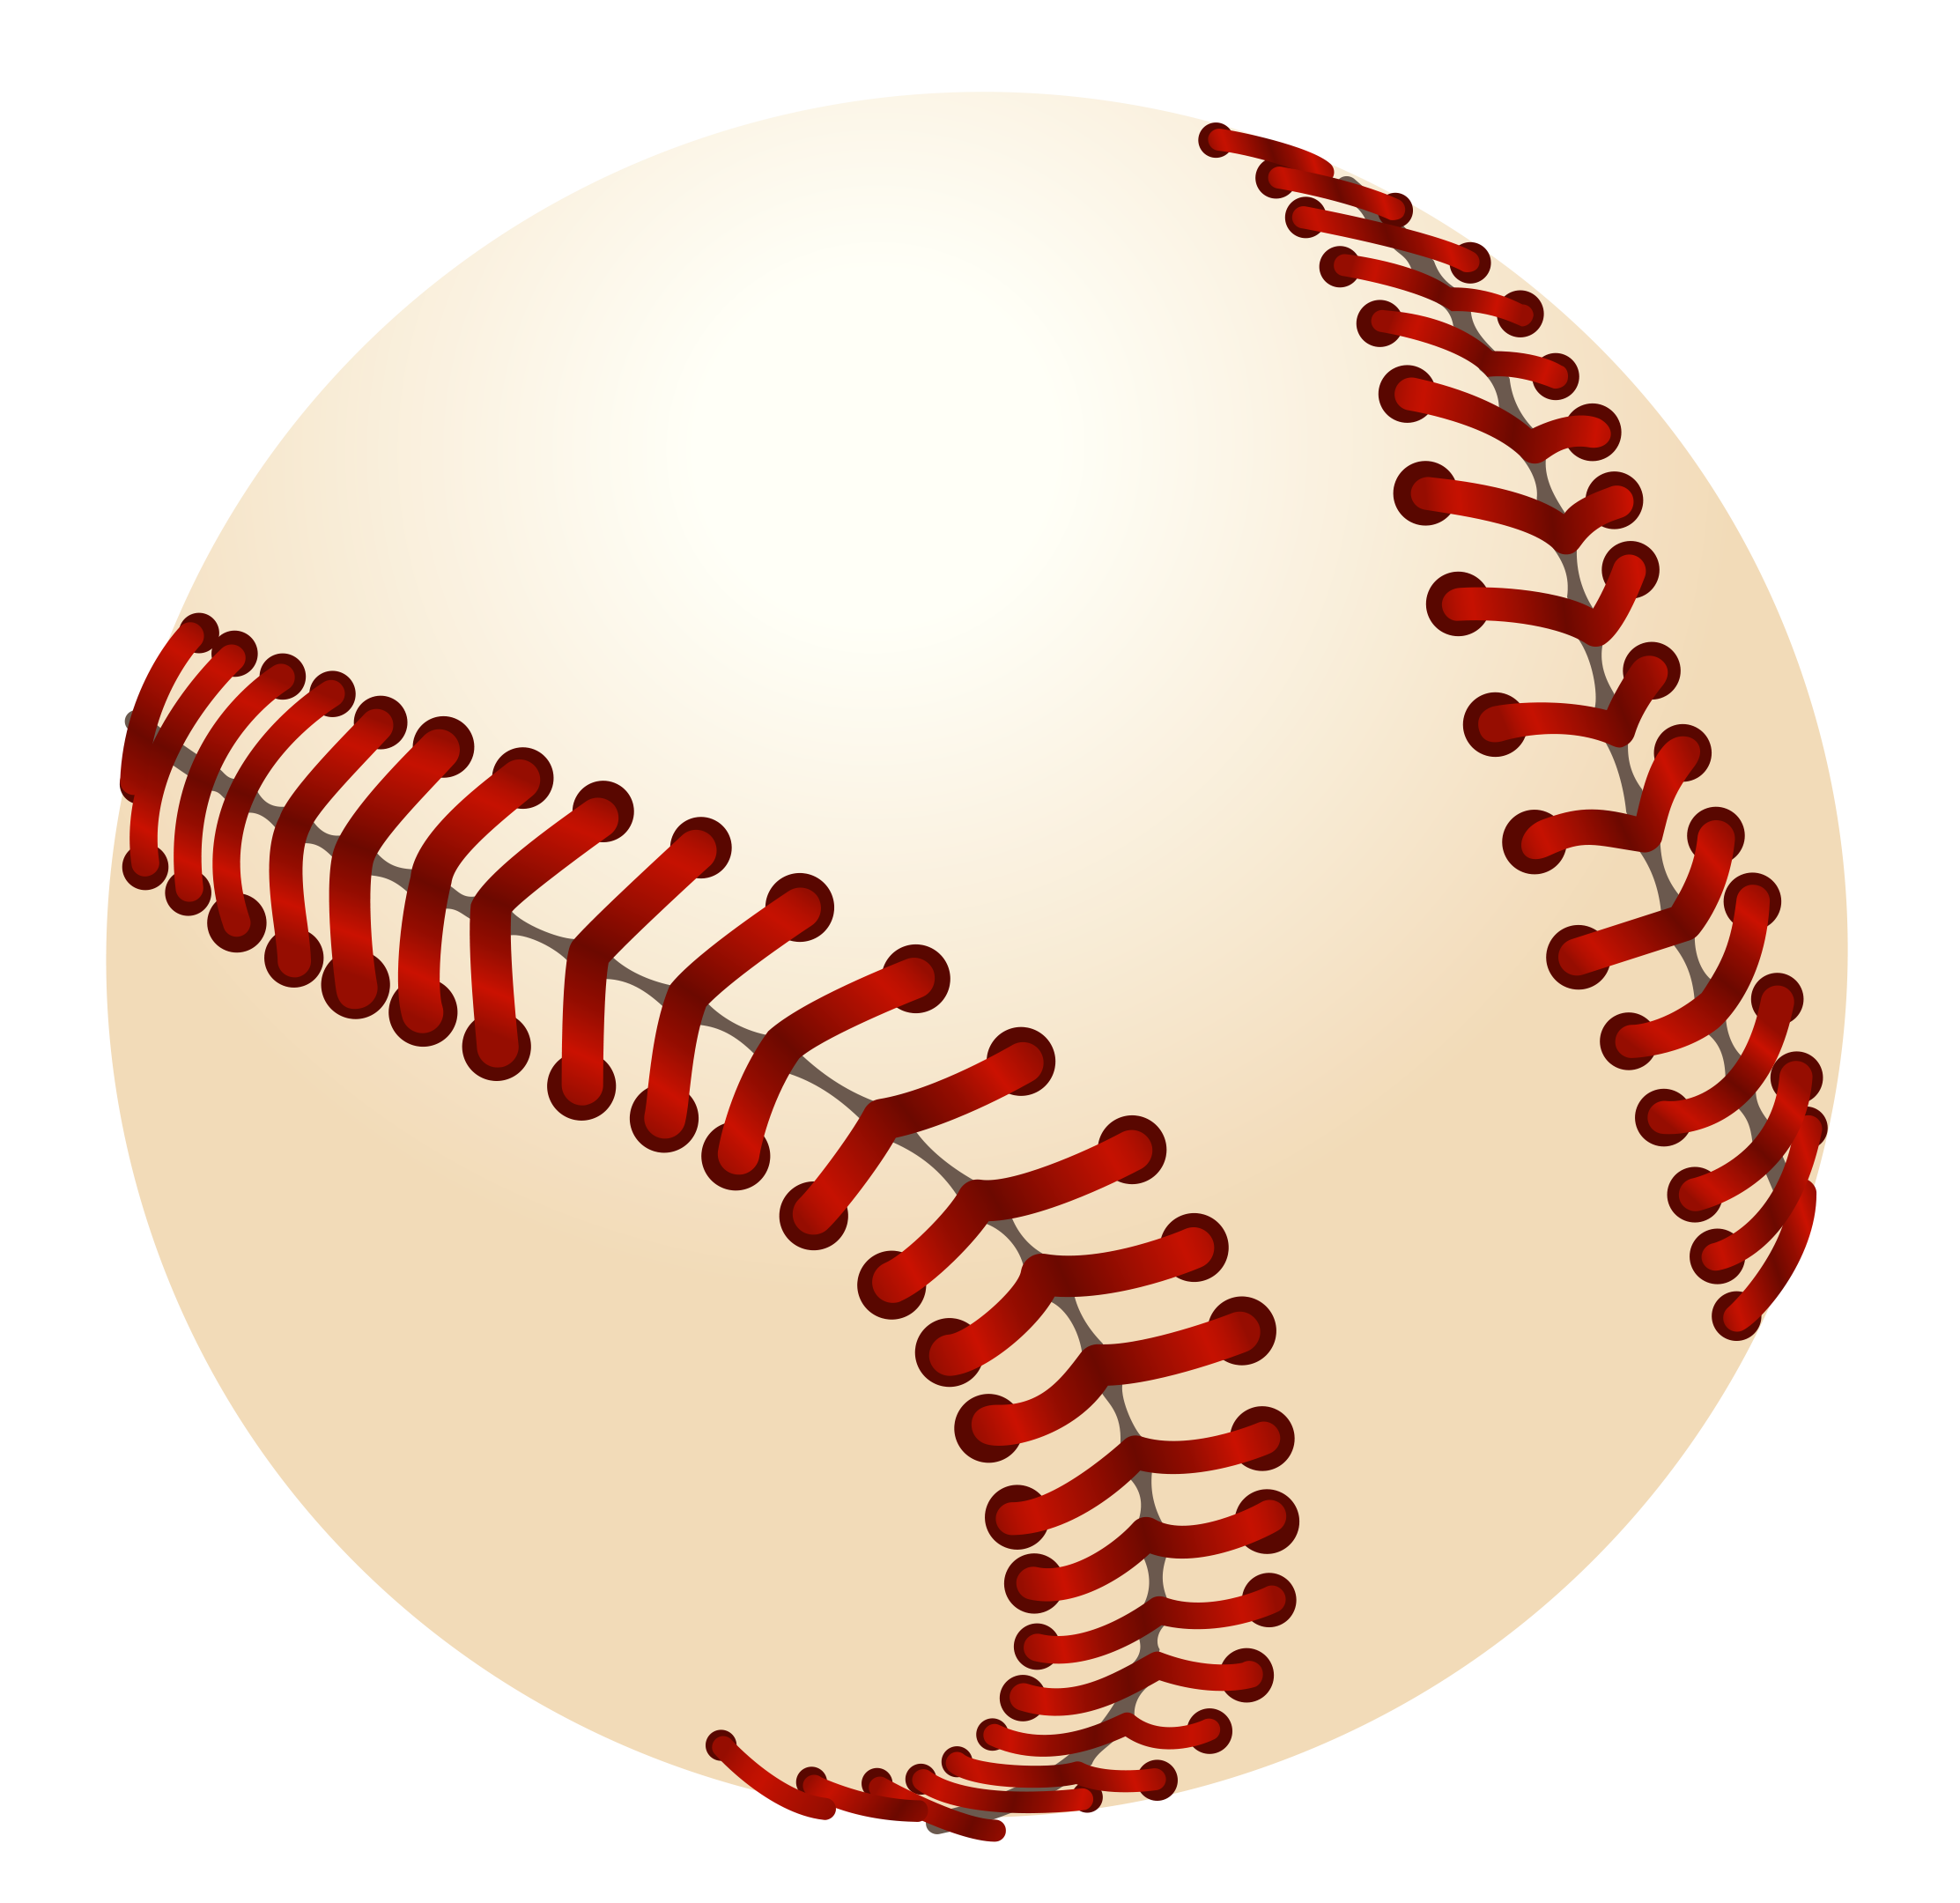 Clipart images of a baseball bat graphic Baseball PNG Image - PurePNG | Free transparent CC0 PNG Image Library graphic